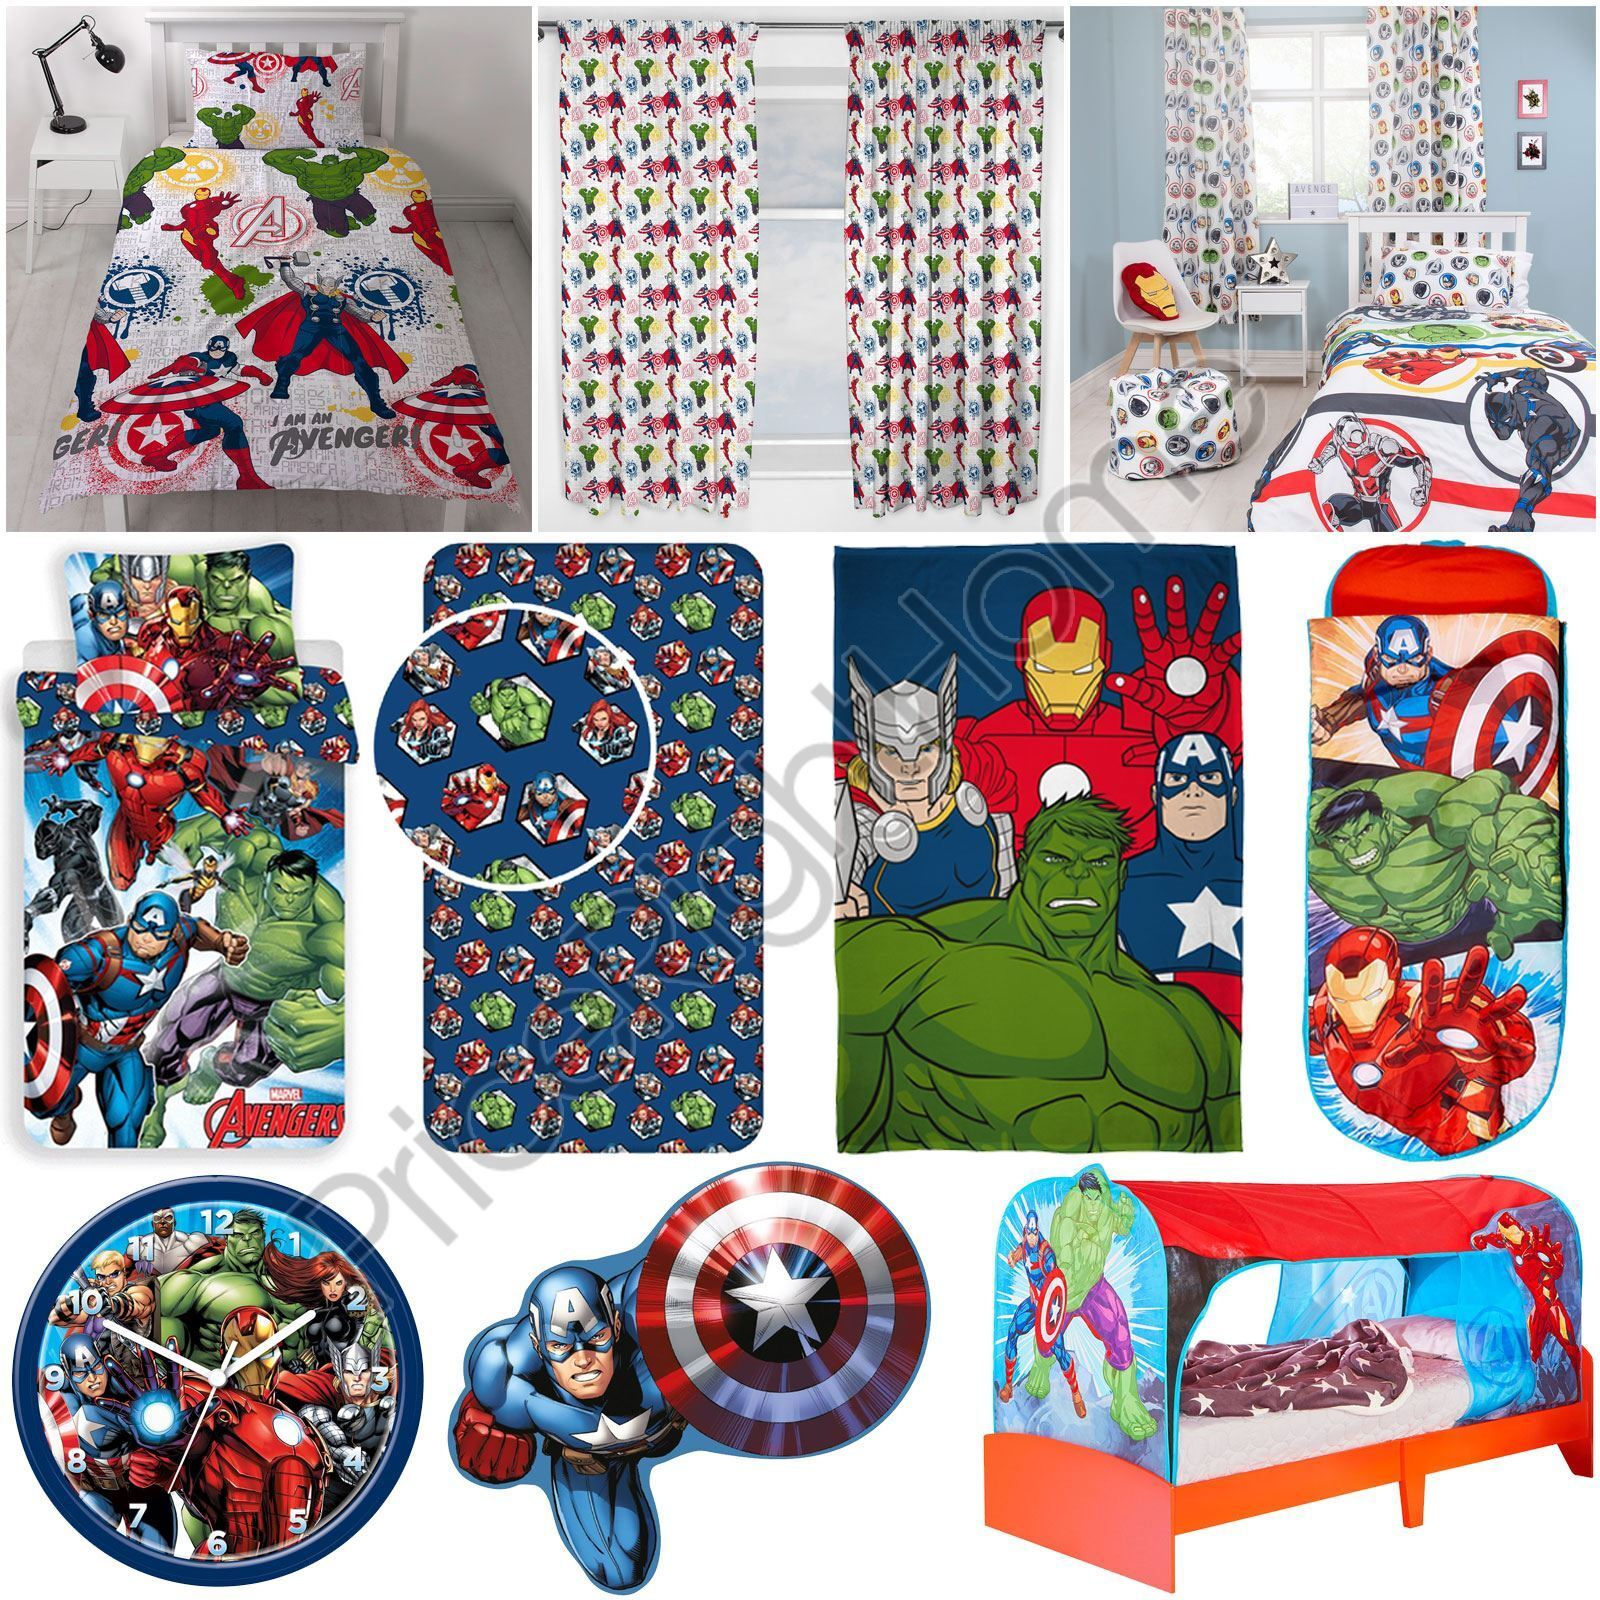 MARVEL AVENGERS - DUVETS CURTAINS CUSHION BLANKET WALL DECOR BED TENT & MORE